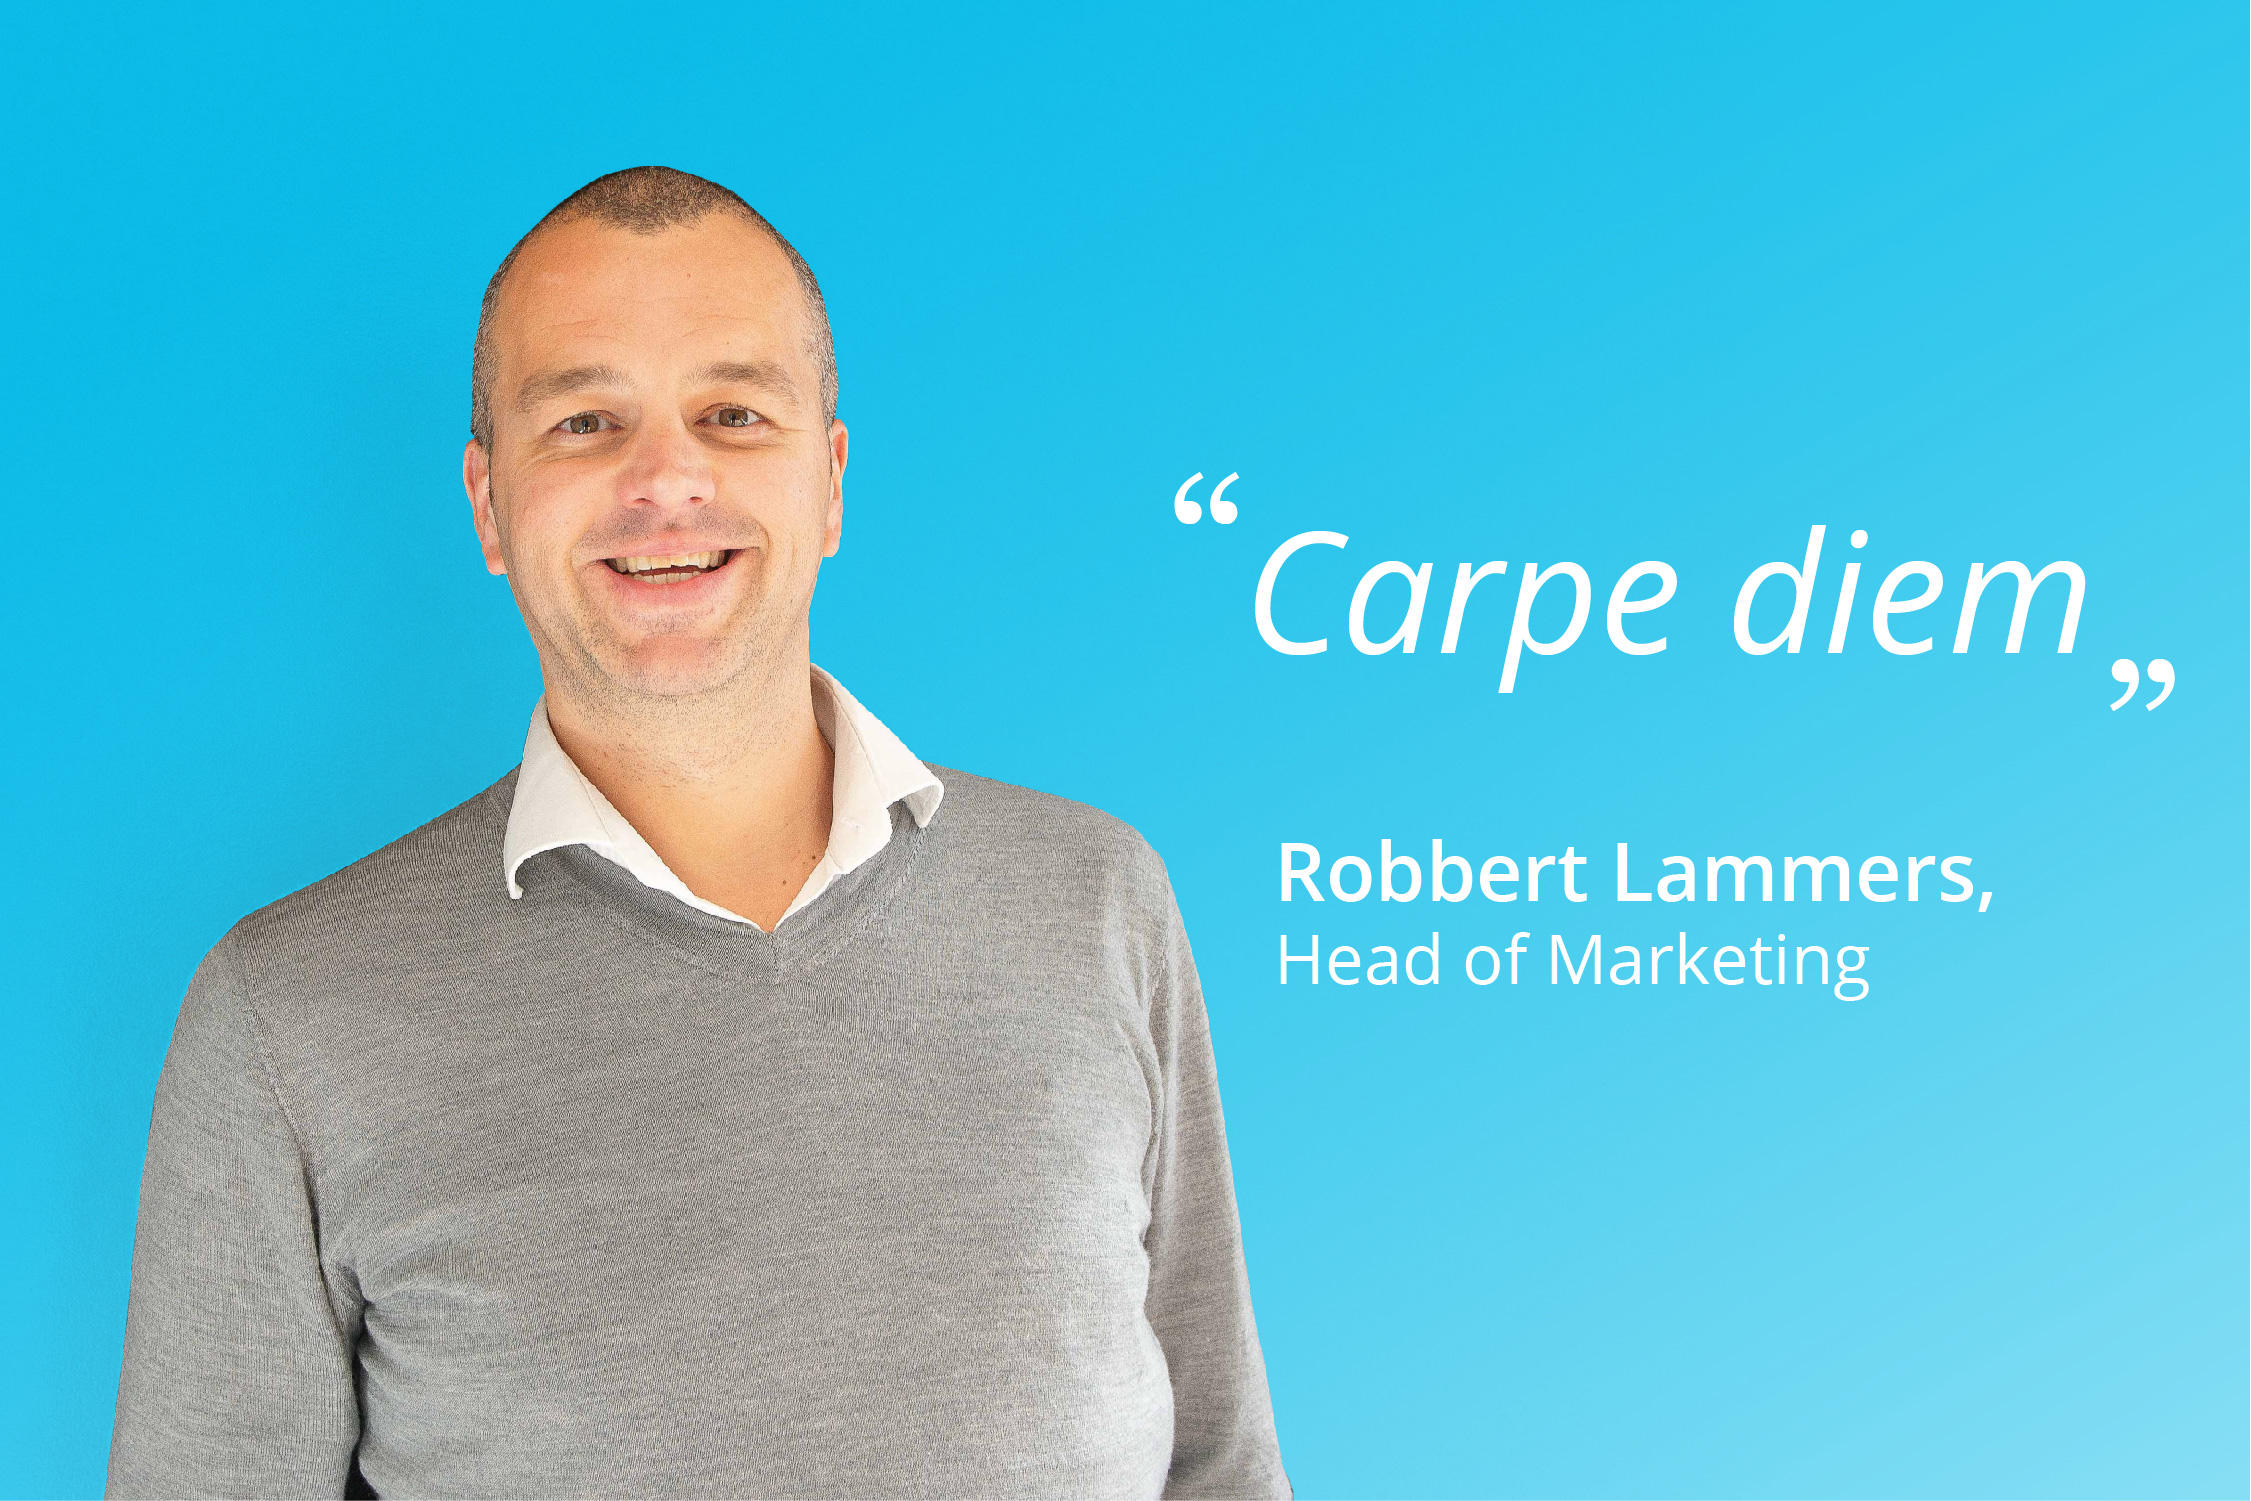 Meet LiveHire's Head of Marketing, Robbert Lammers.